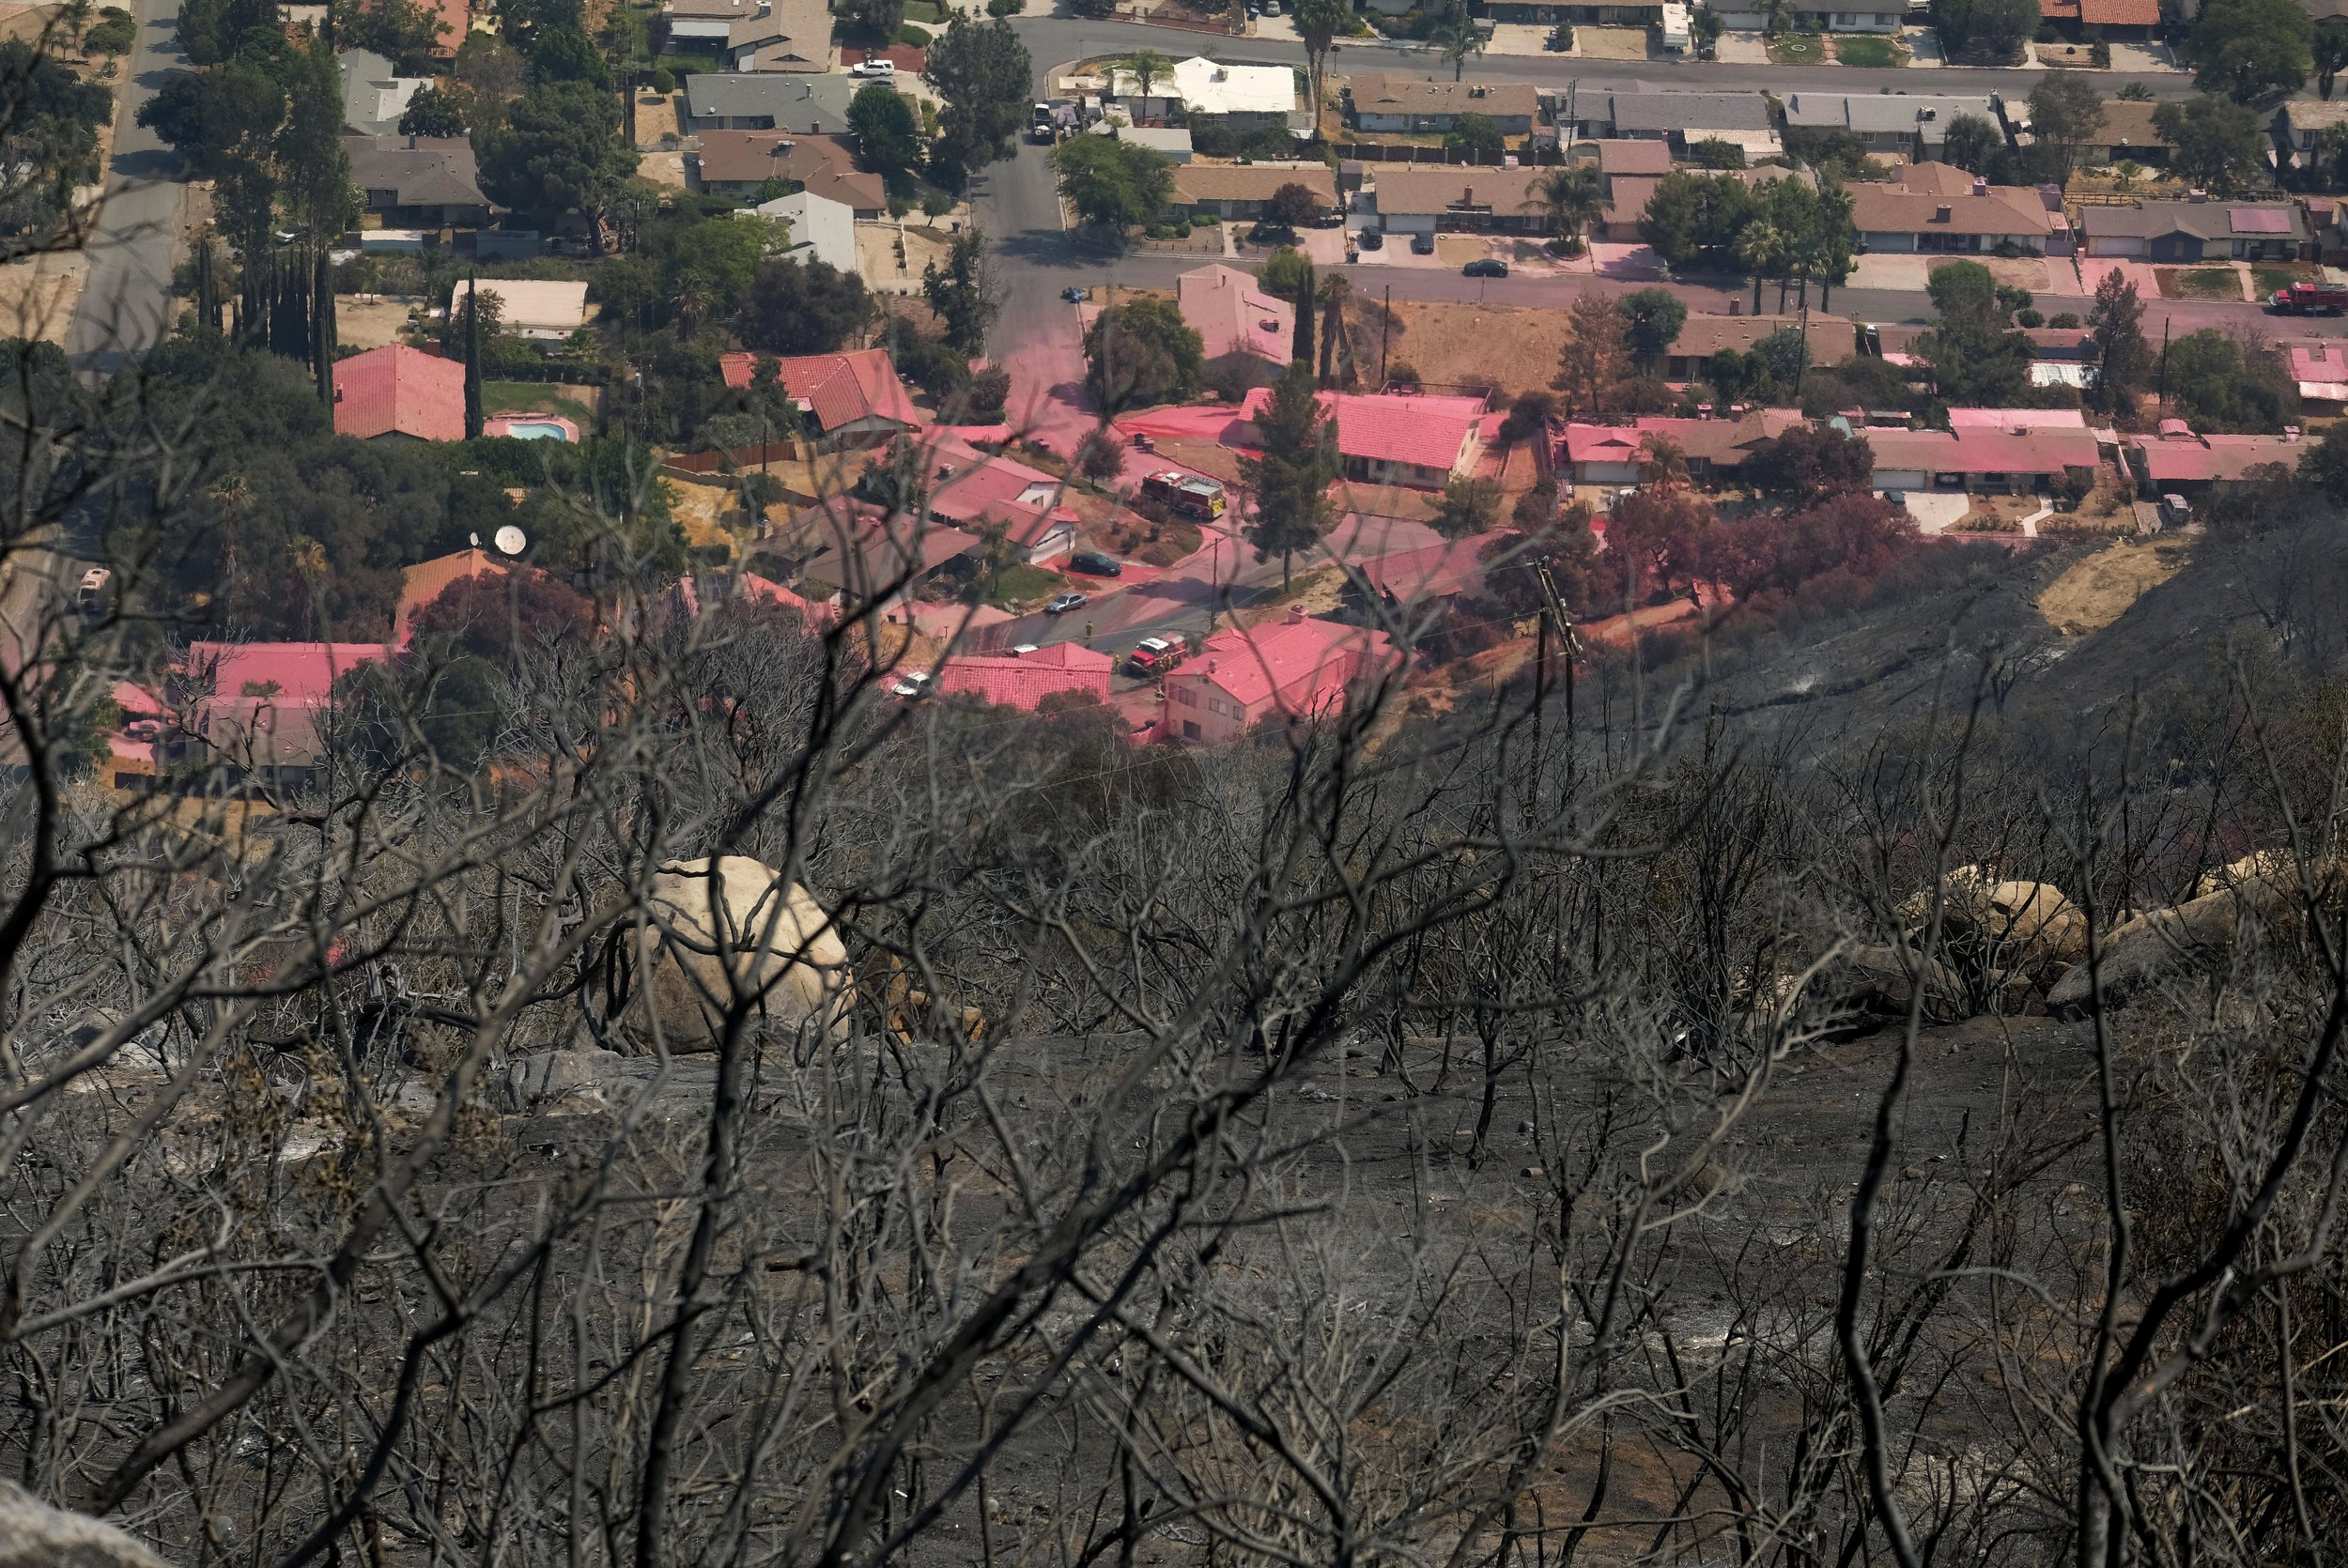 Homes are covered in pink fire retardant at the Holy Fire in Lake Elsinore, California, southeast of Los Angeles, on August 11, 2018. The fire has burned 21,473 acres and was 29 percent contained as of 8:30 a.m. Saturday, according to the Cleveland National Forest.